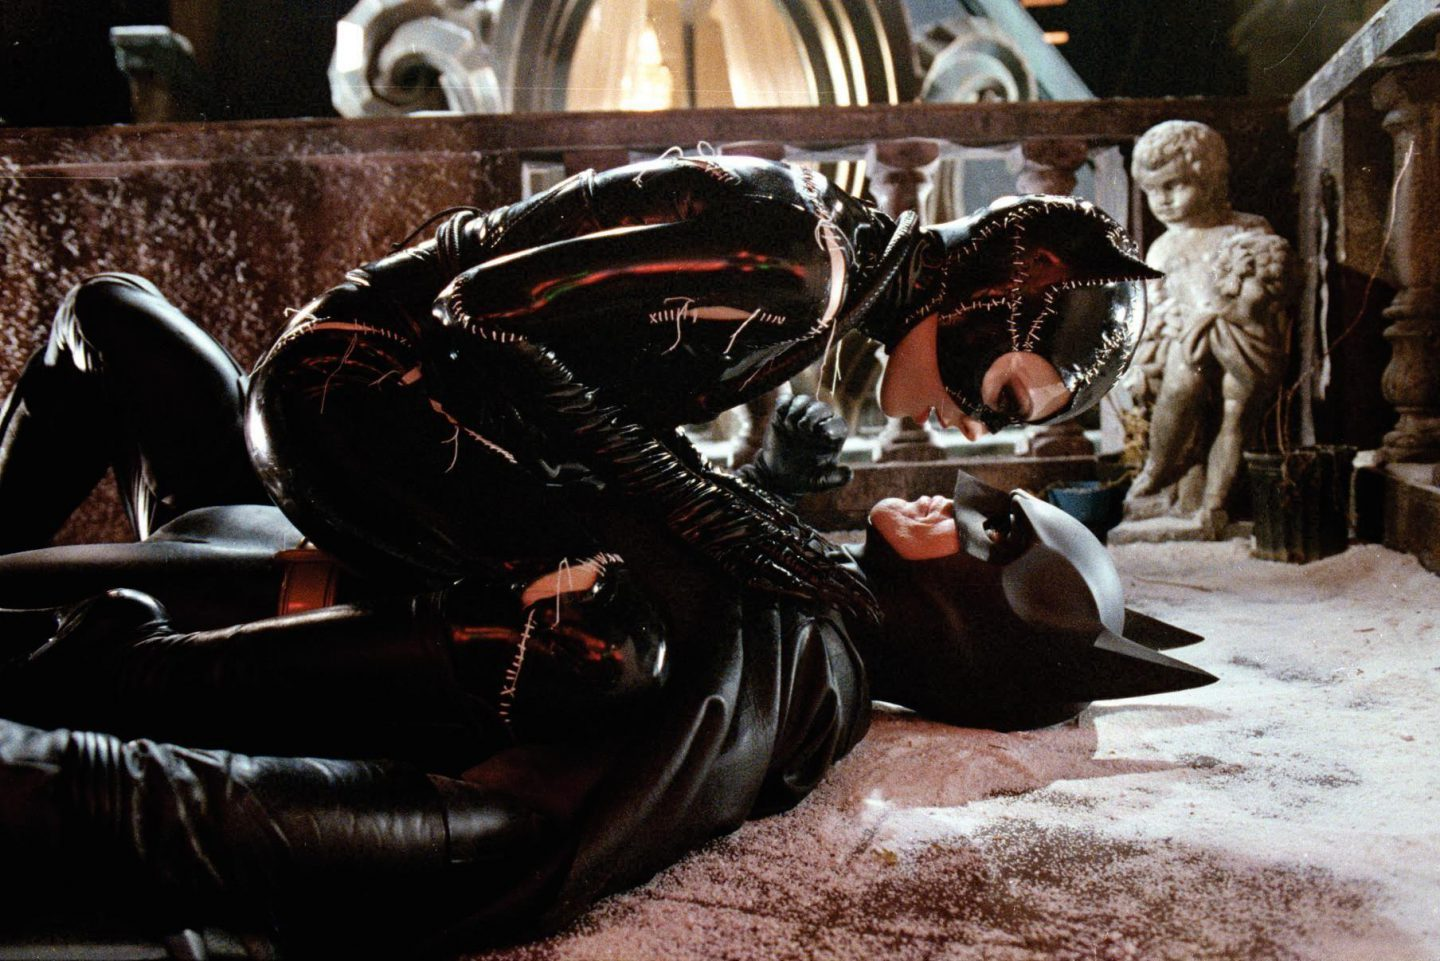 Batman Returns: Movies That Deserve More Love